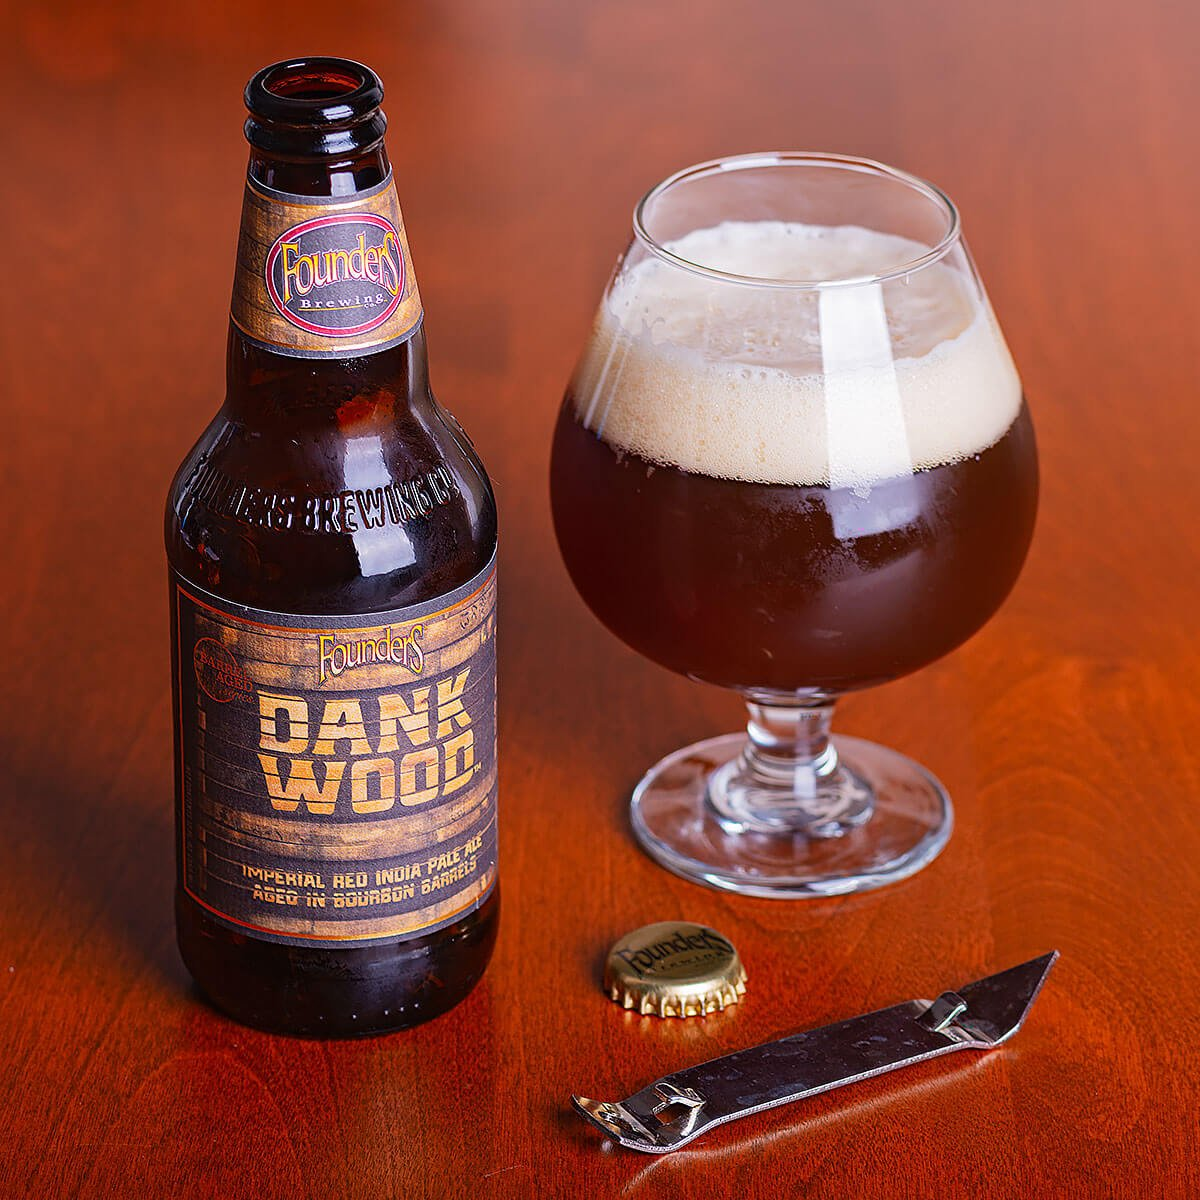 Dankwood, an American Red Ale by Founders Brewing Co.